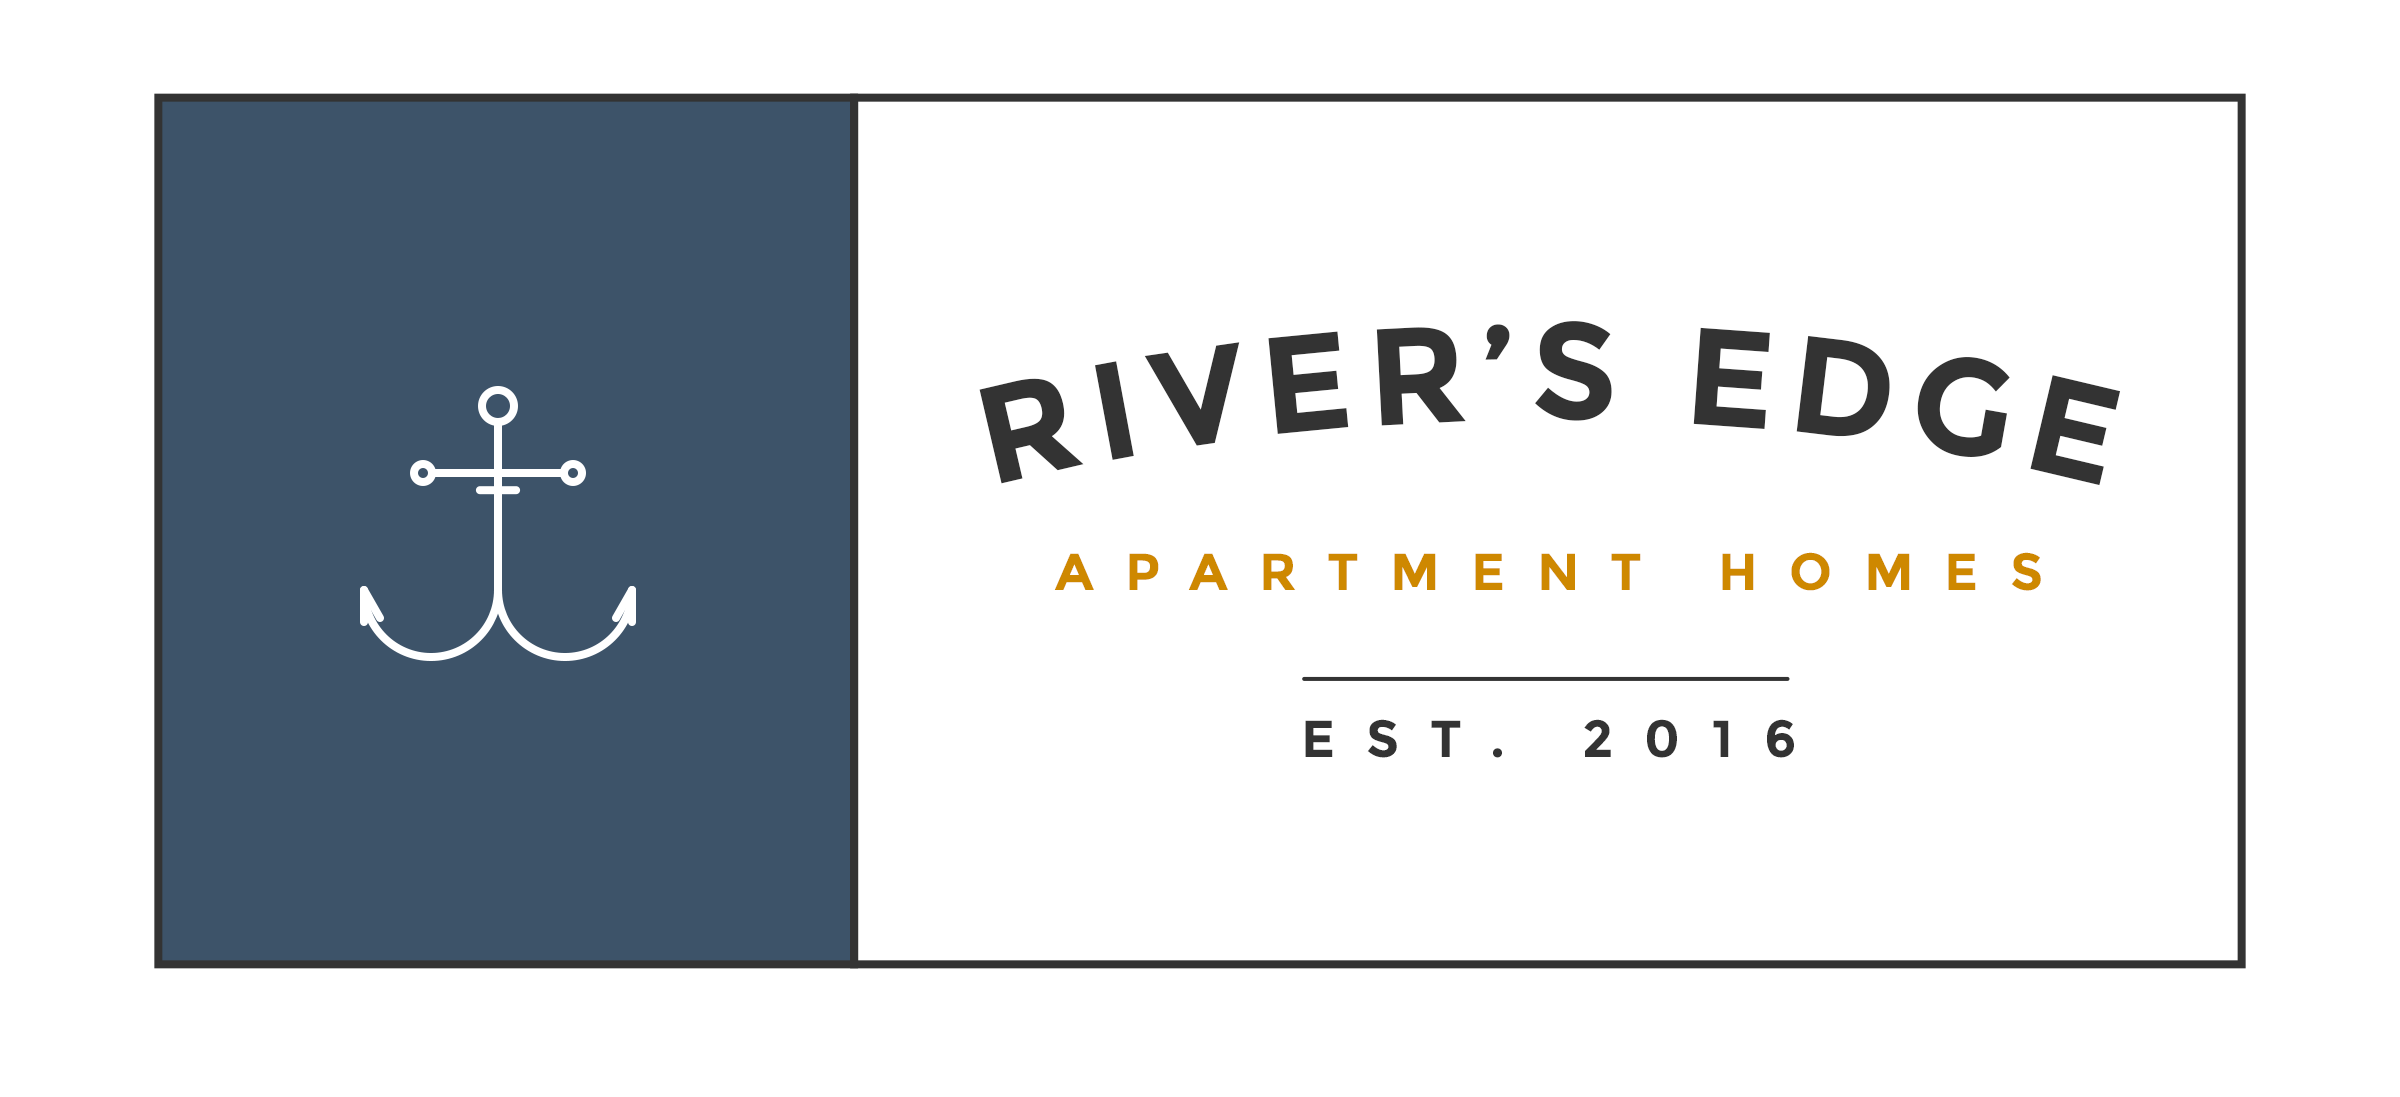 Rivers Edge Apartment Homes in Knoxville, TN